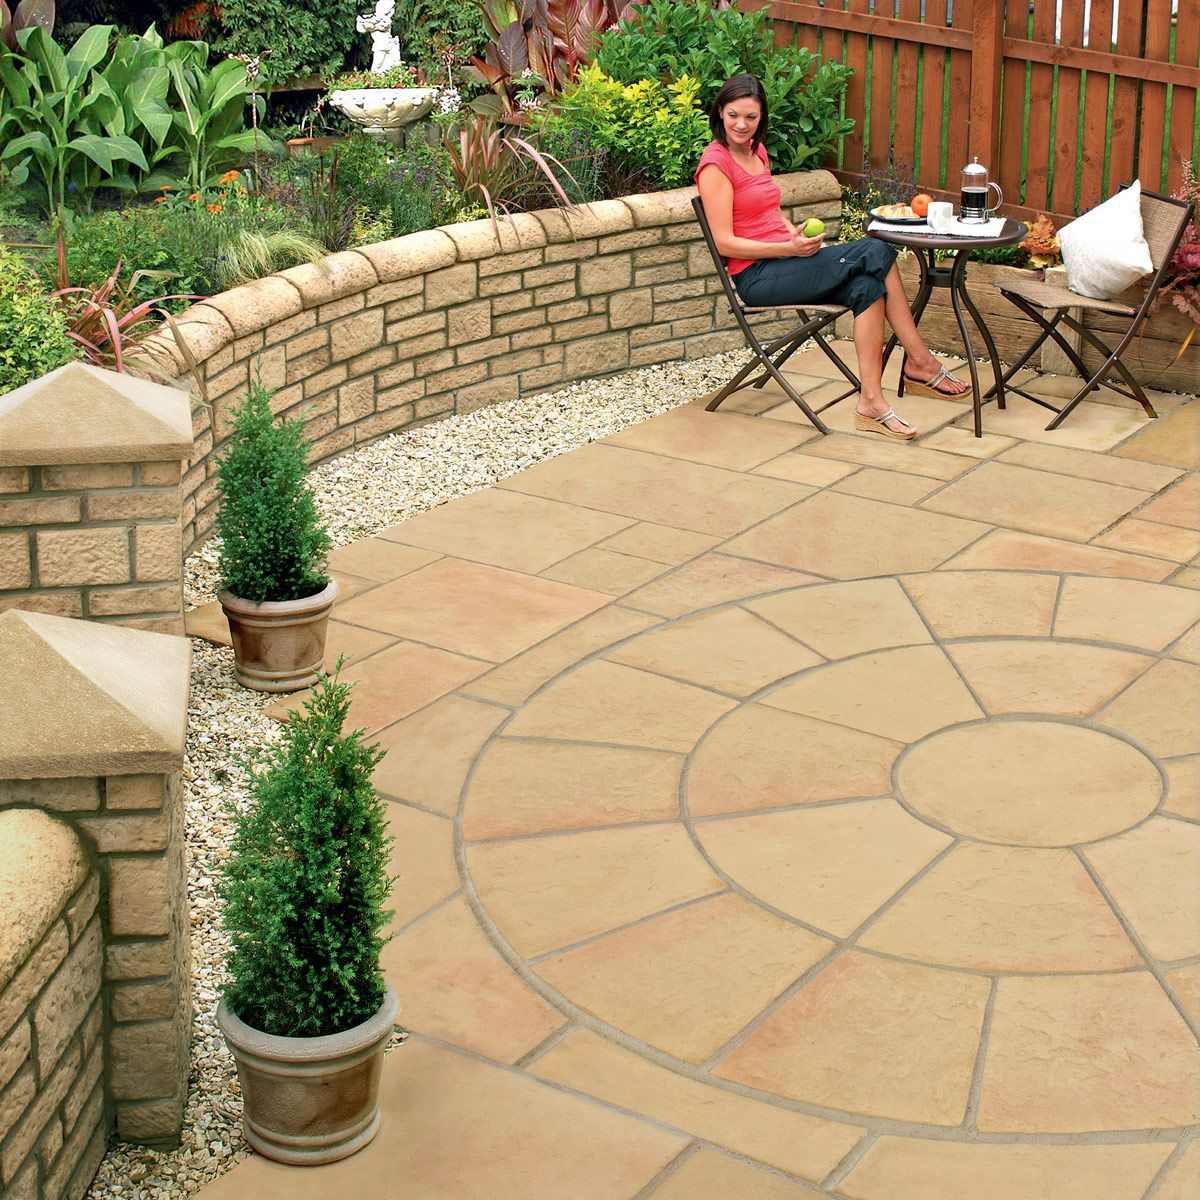 Patio Ideas With Existing Concrete Slab: Open Bricks For Driveways - Google Search